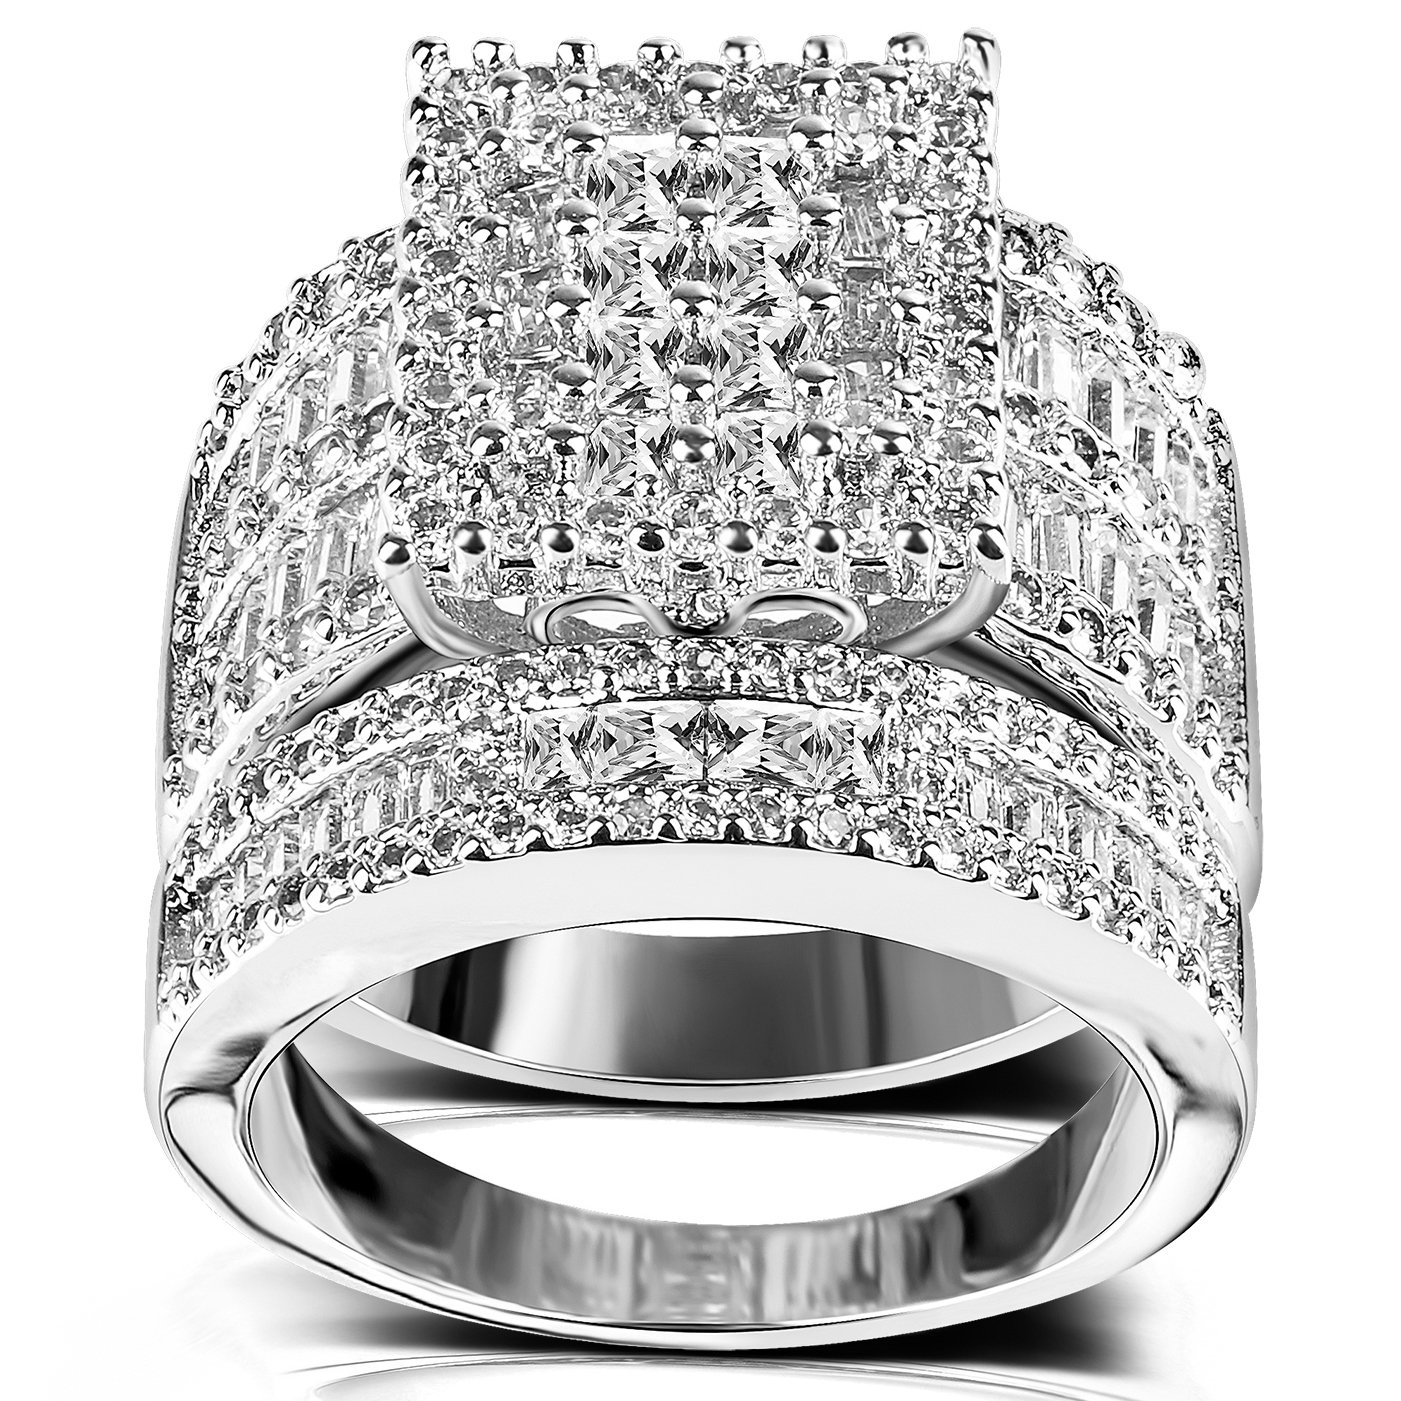 Amazon.com  Square Cubic Zirconia Bridal Set - Princess Cut CZ Jewelry Engagement  Wedding Band Rings Set for Women  Jewelry 21cd30a3d4